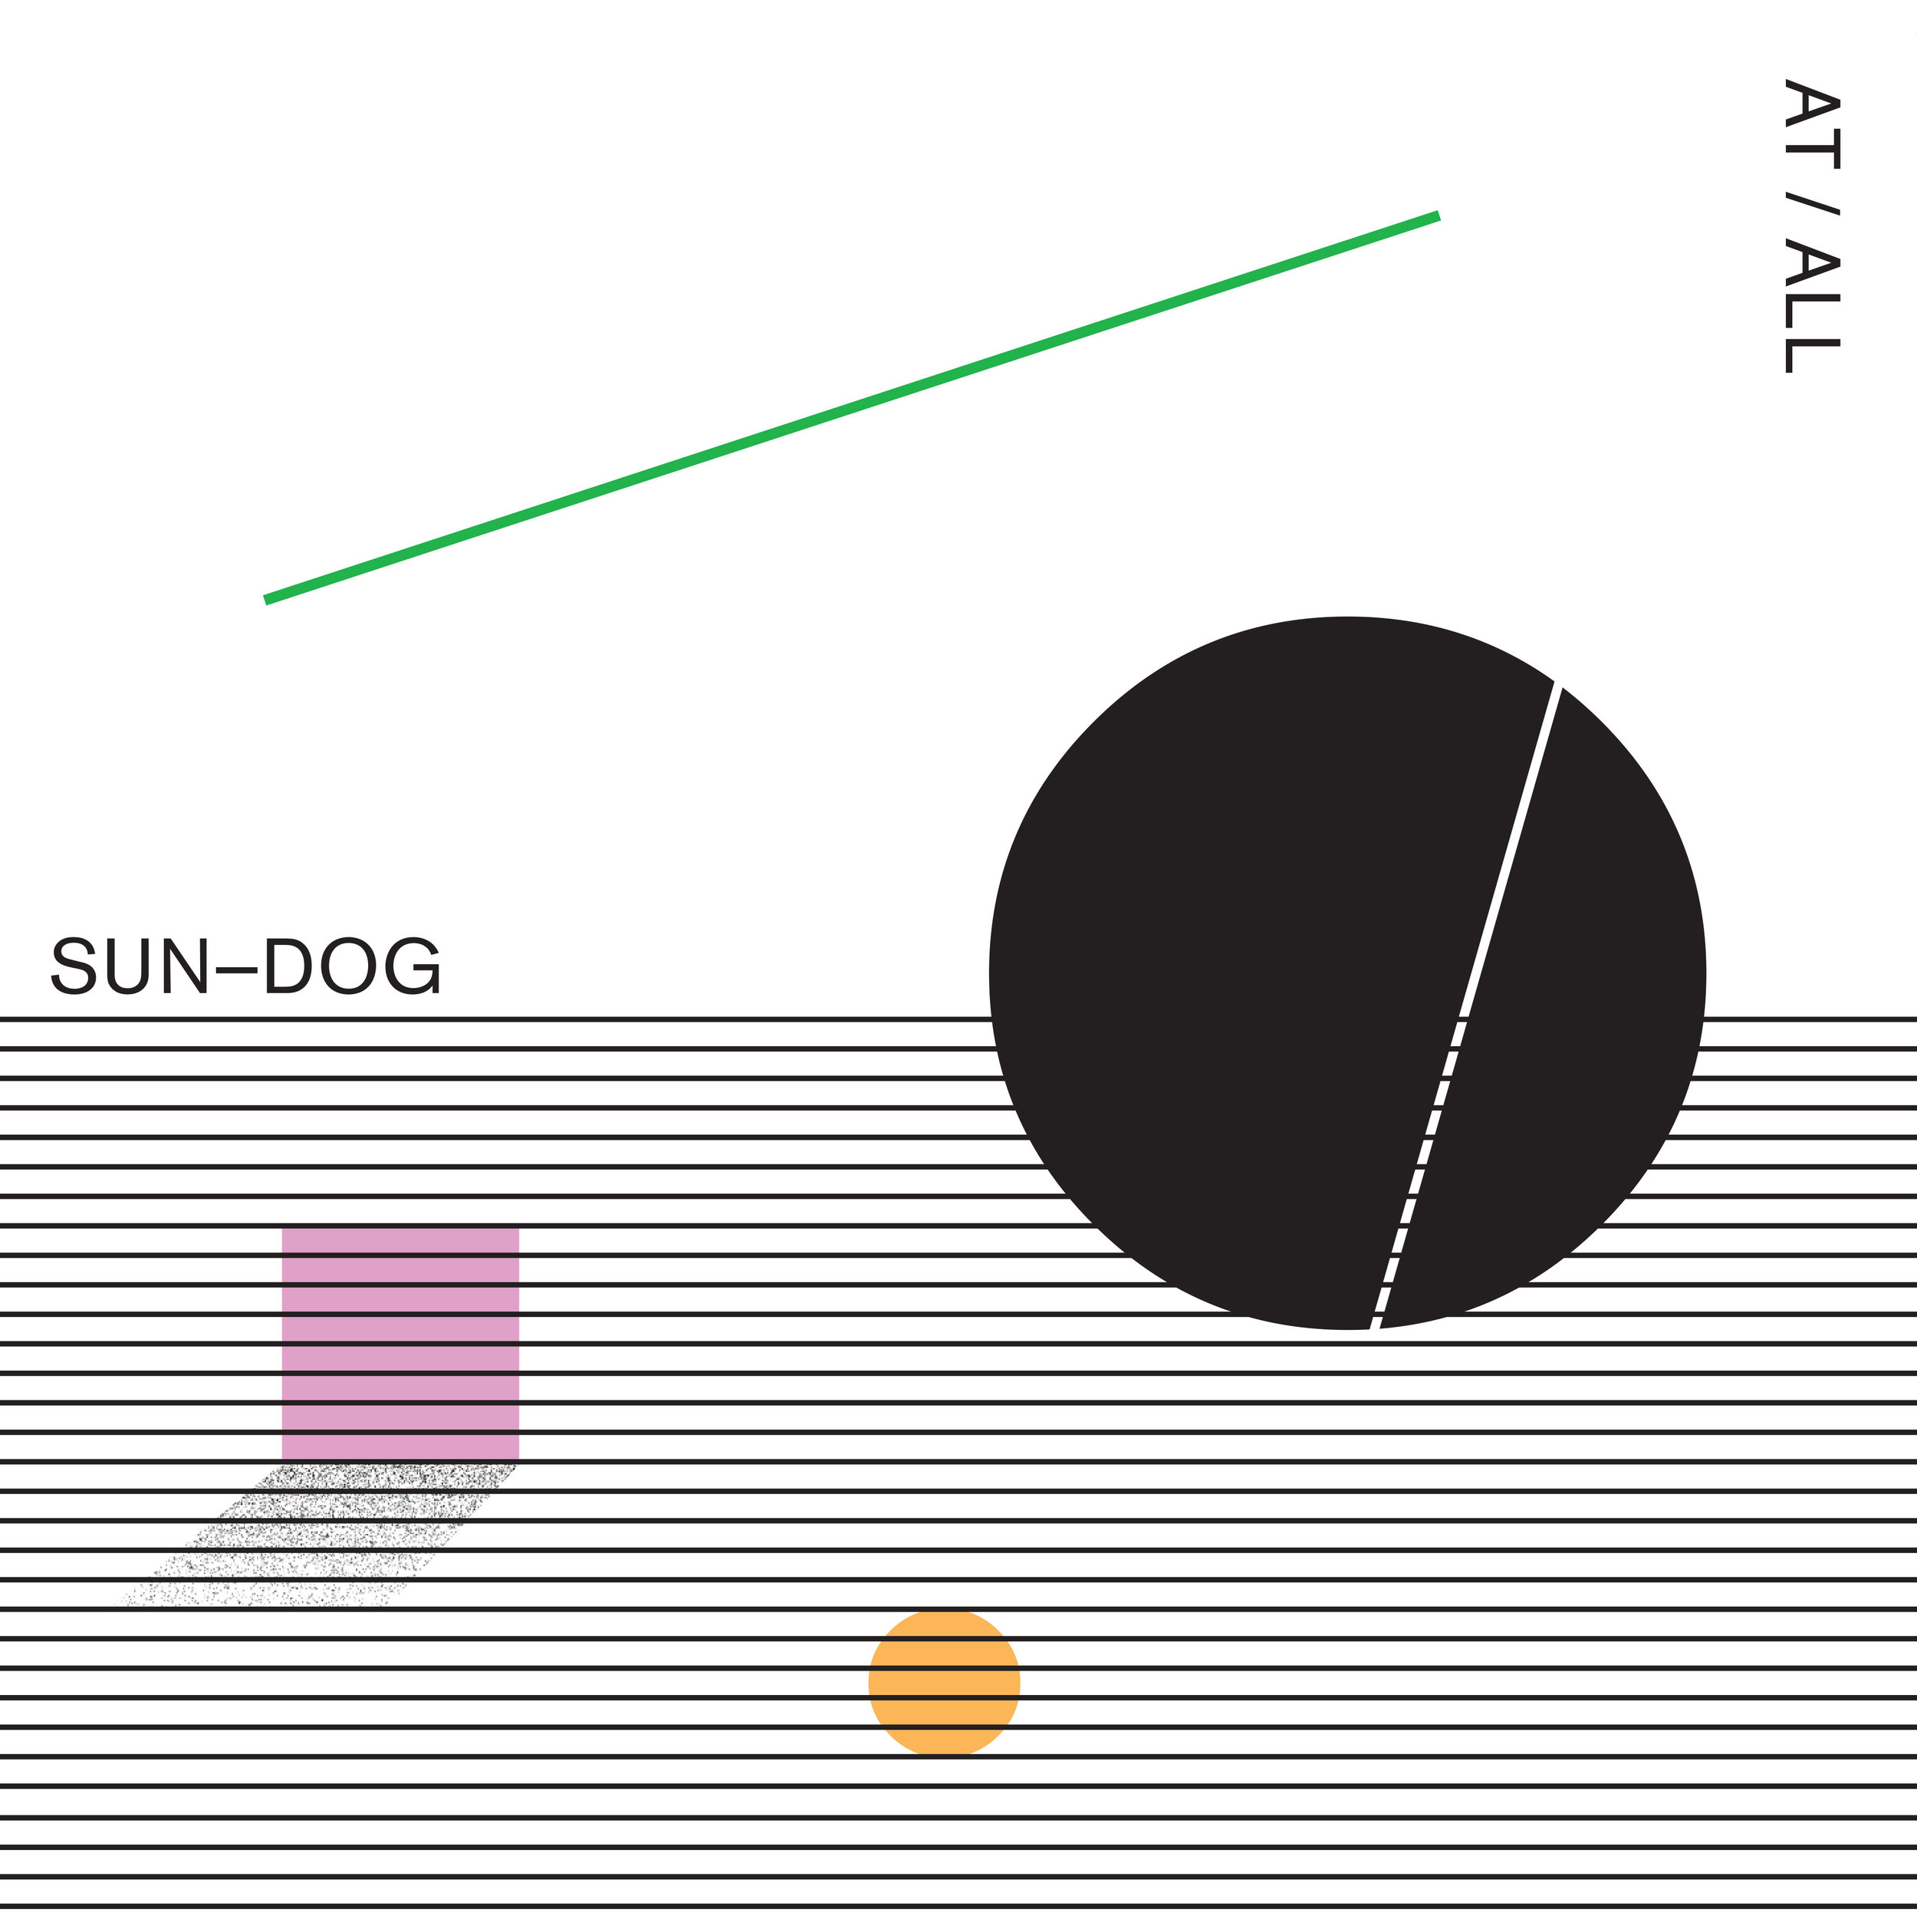 AT/ALL is a new electro-pop collaboration between Matthew Nicholson, Lucy Roleff, and myself. We just released our debut LP, SUN DOG, check it out!